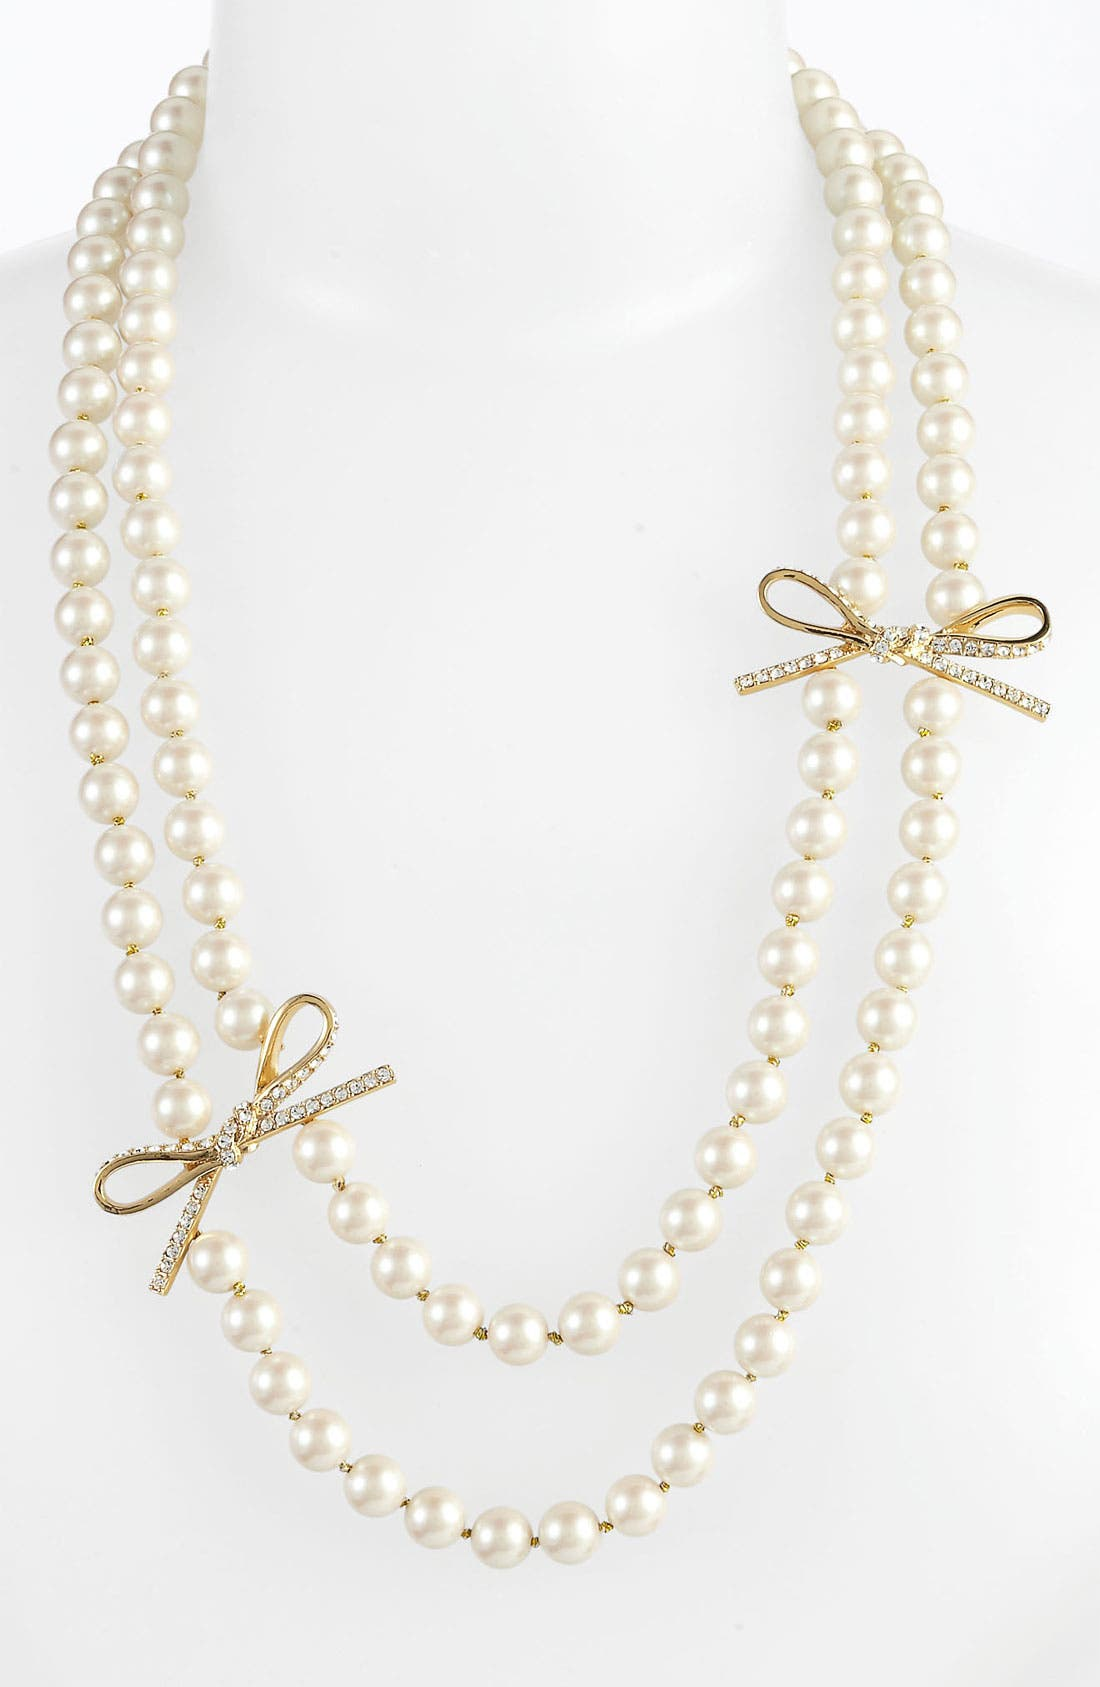 Alternate Image 1 Selected - kate spade new york 'skinny mini' faux pearl necklace